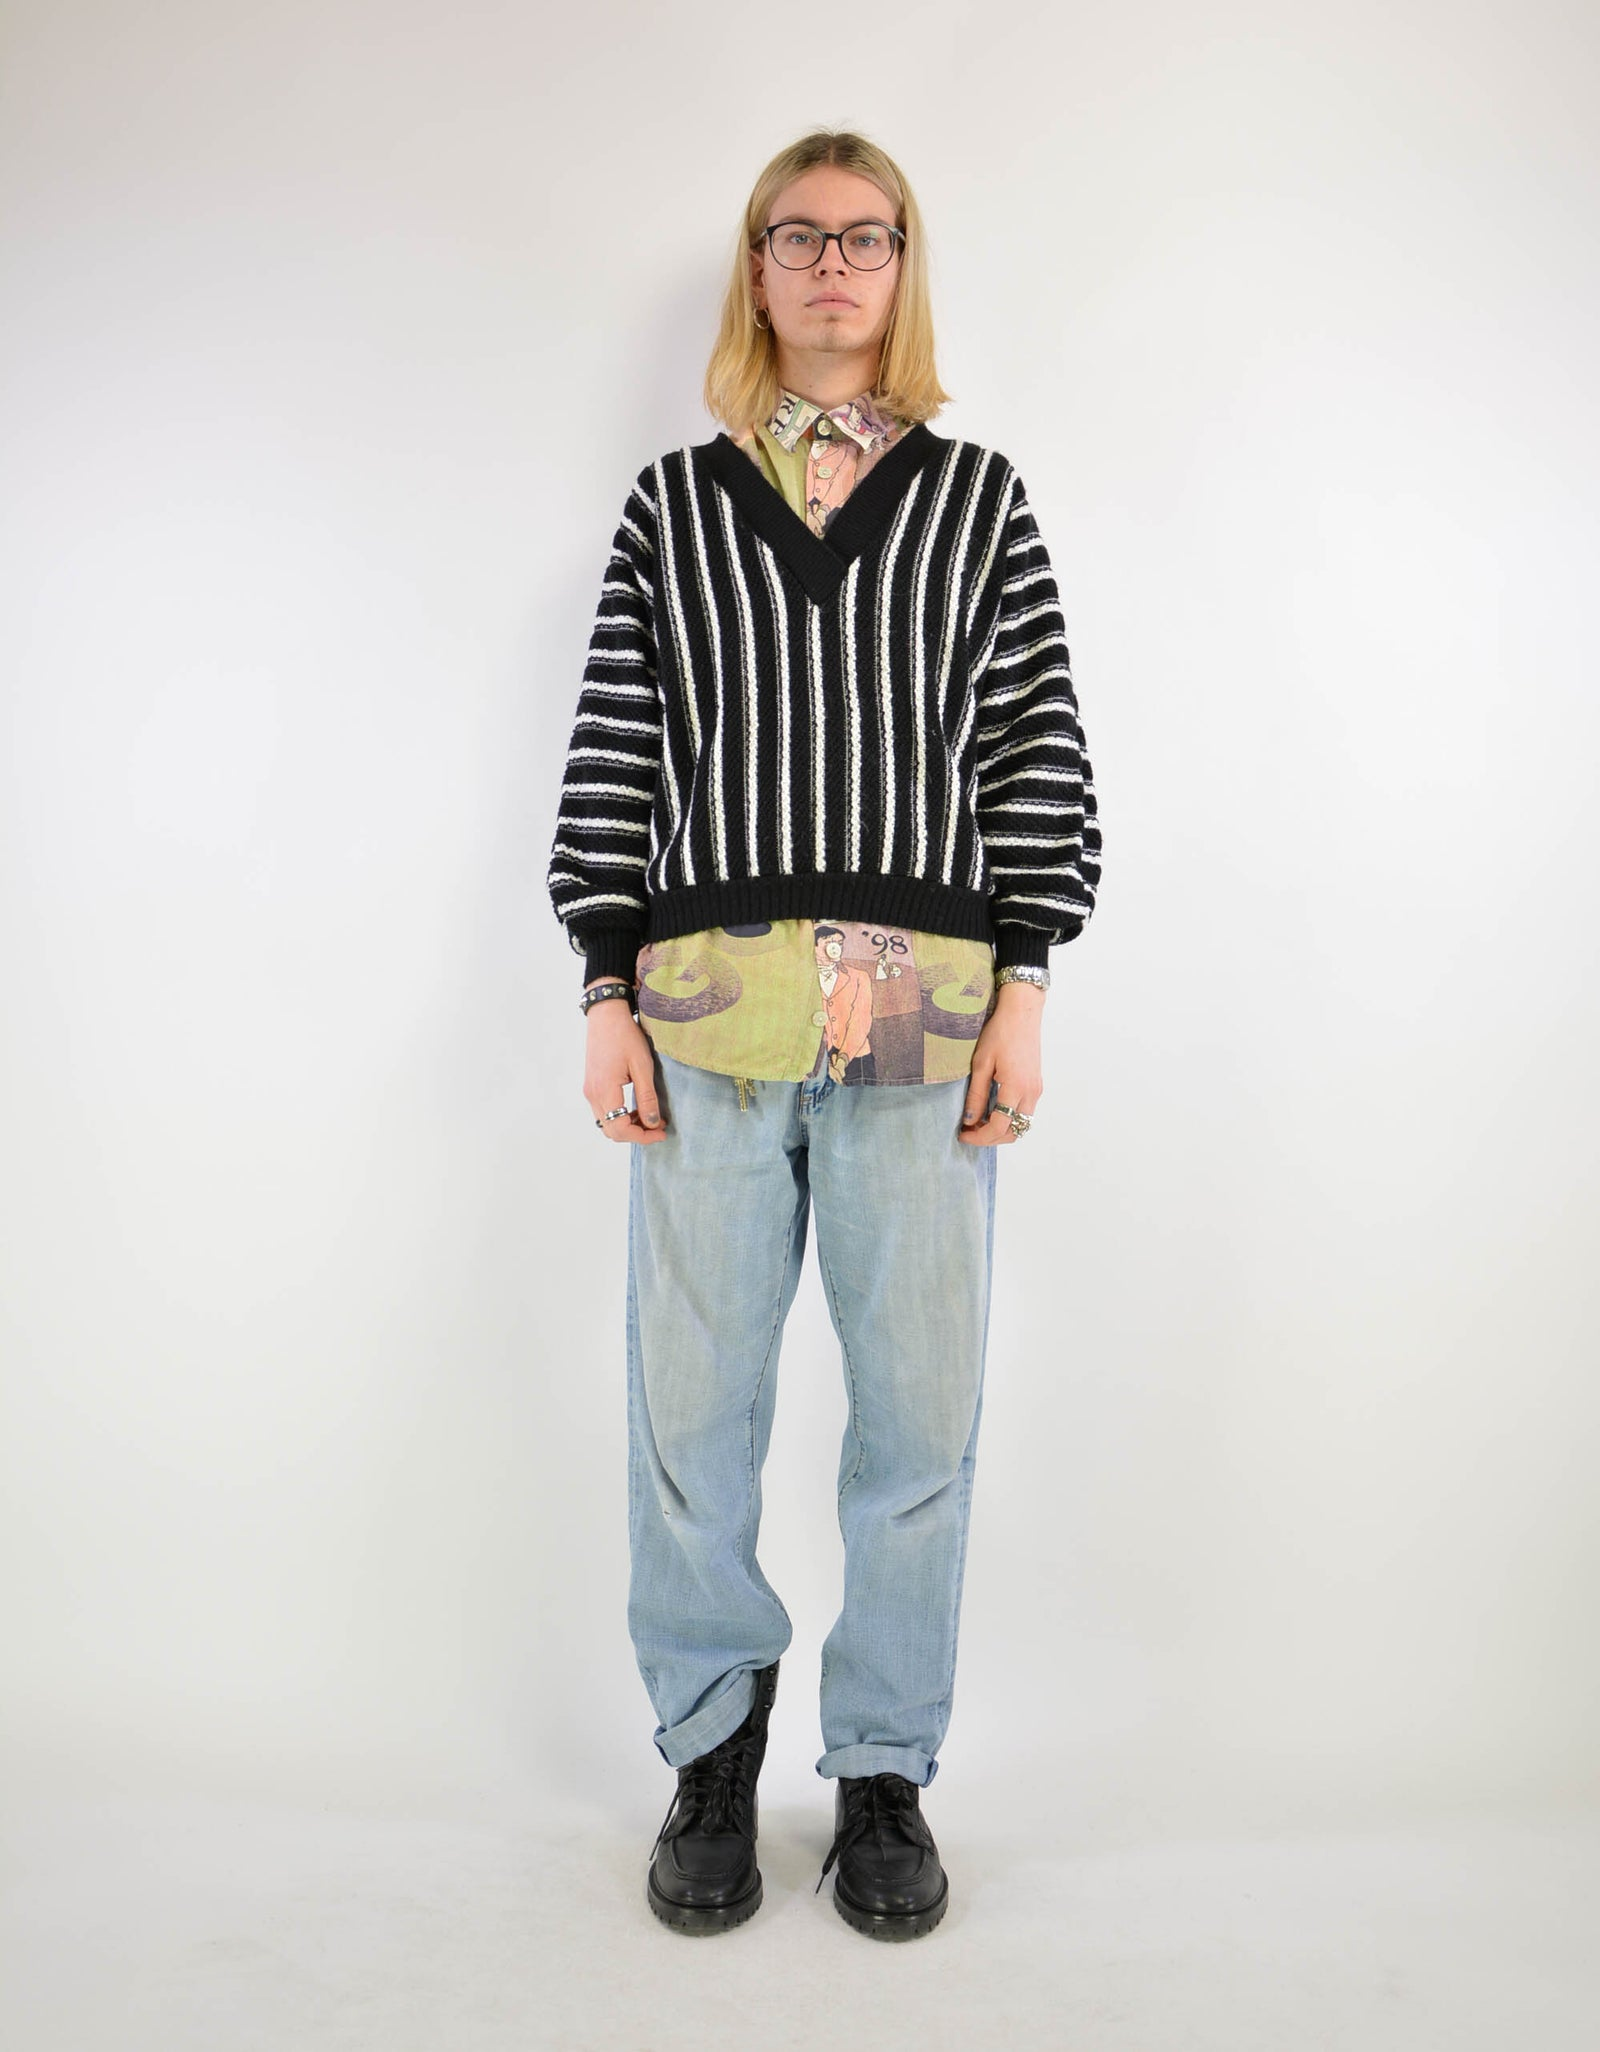 Striped sweater - PICKNWEIGHT - VINTAGE KILO STORE